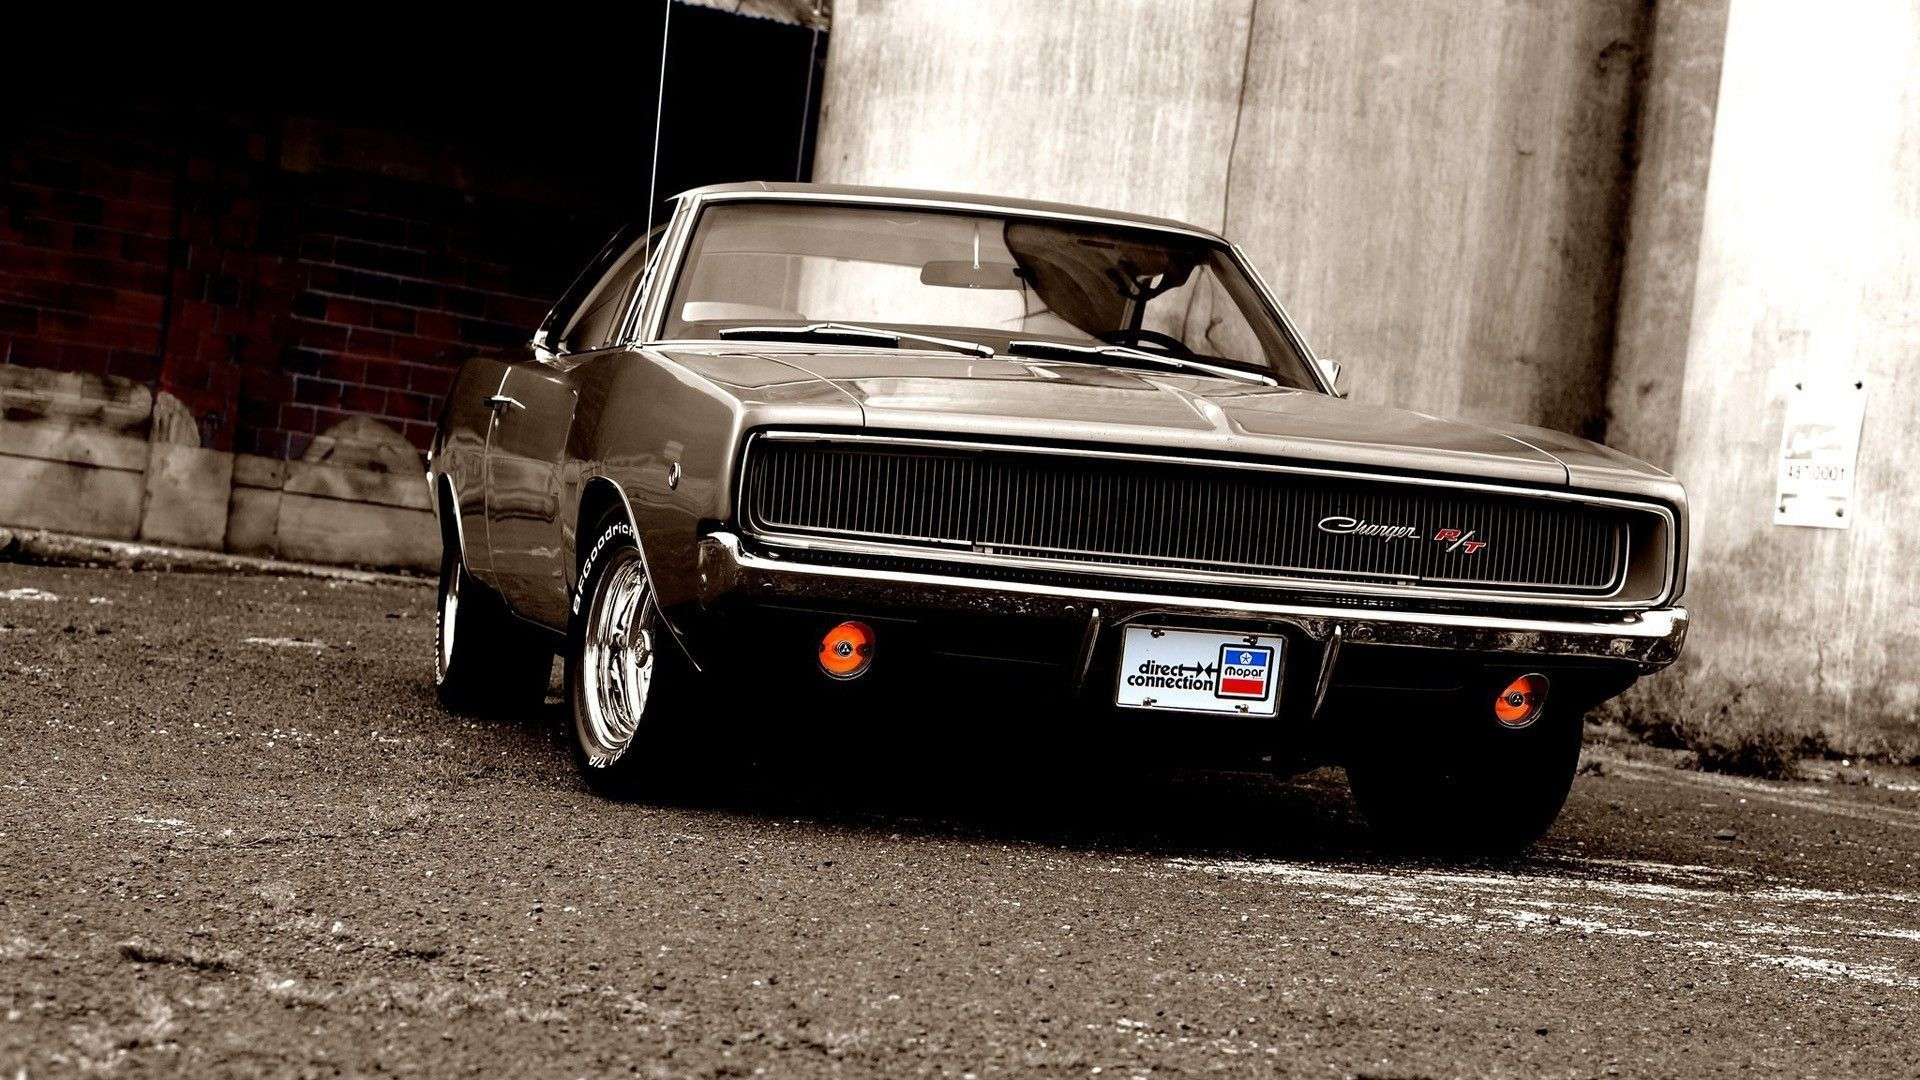 1970 Dodge Charger Rt Wallpaper 1920x1080 For Ipad Pro Garage